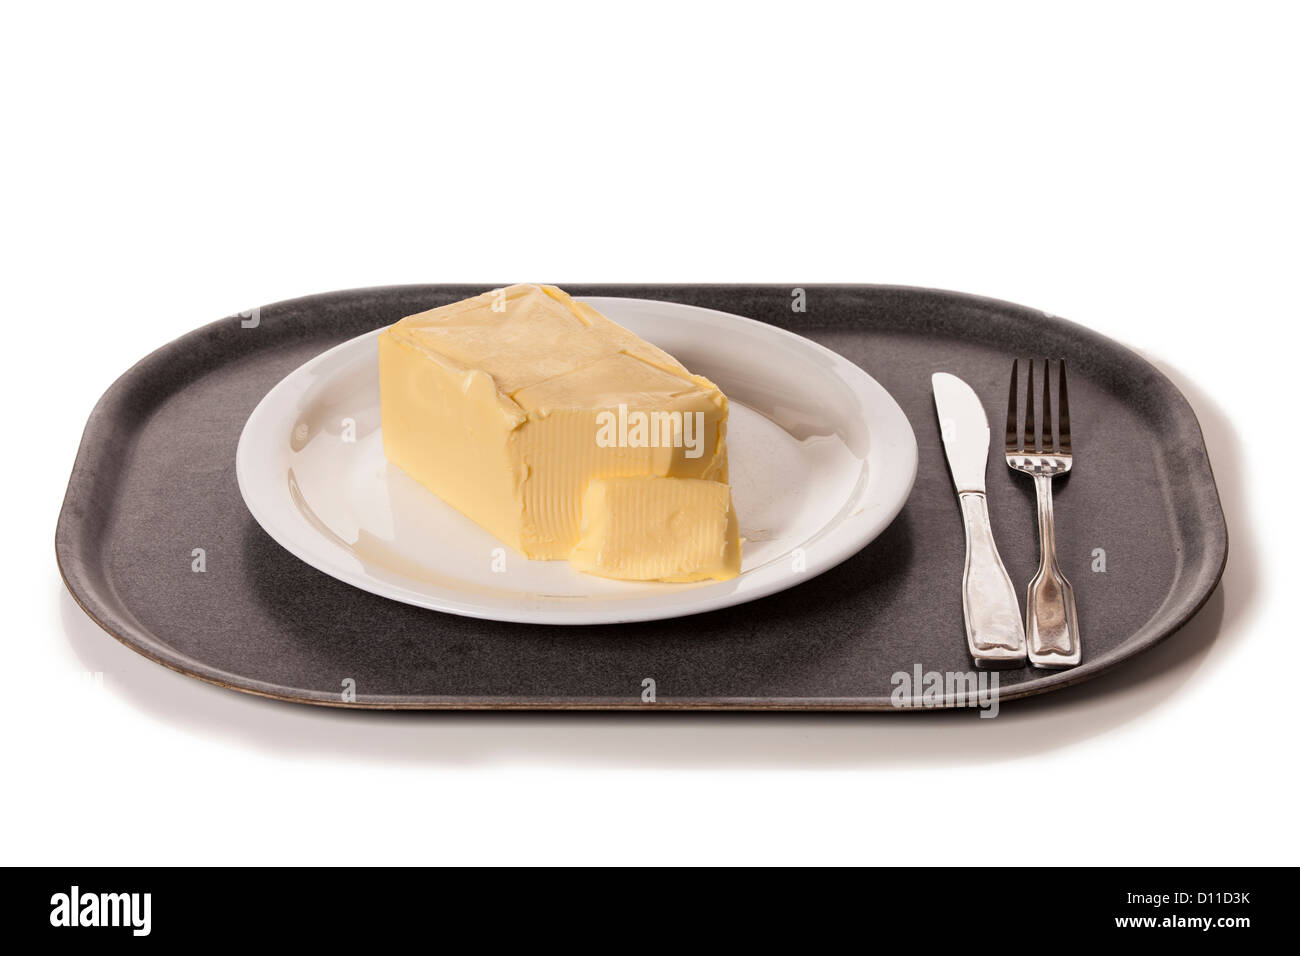 Block of butter on a plate, time to eat an unhealthy dinner. - Stock Image